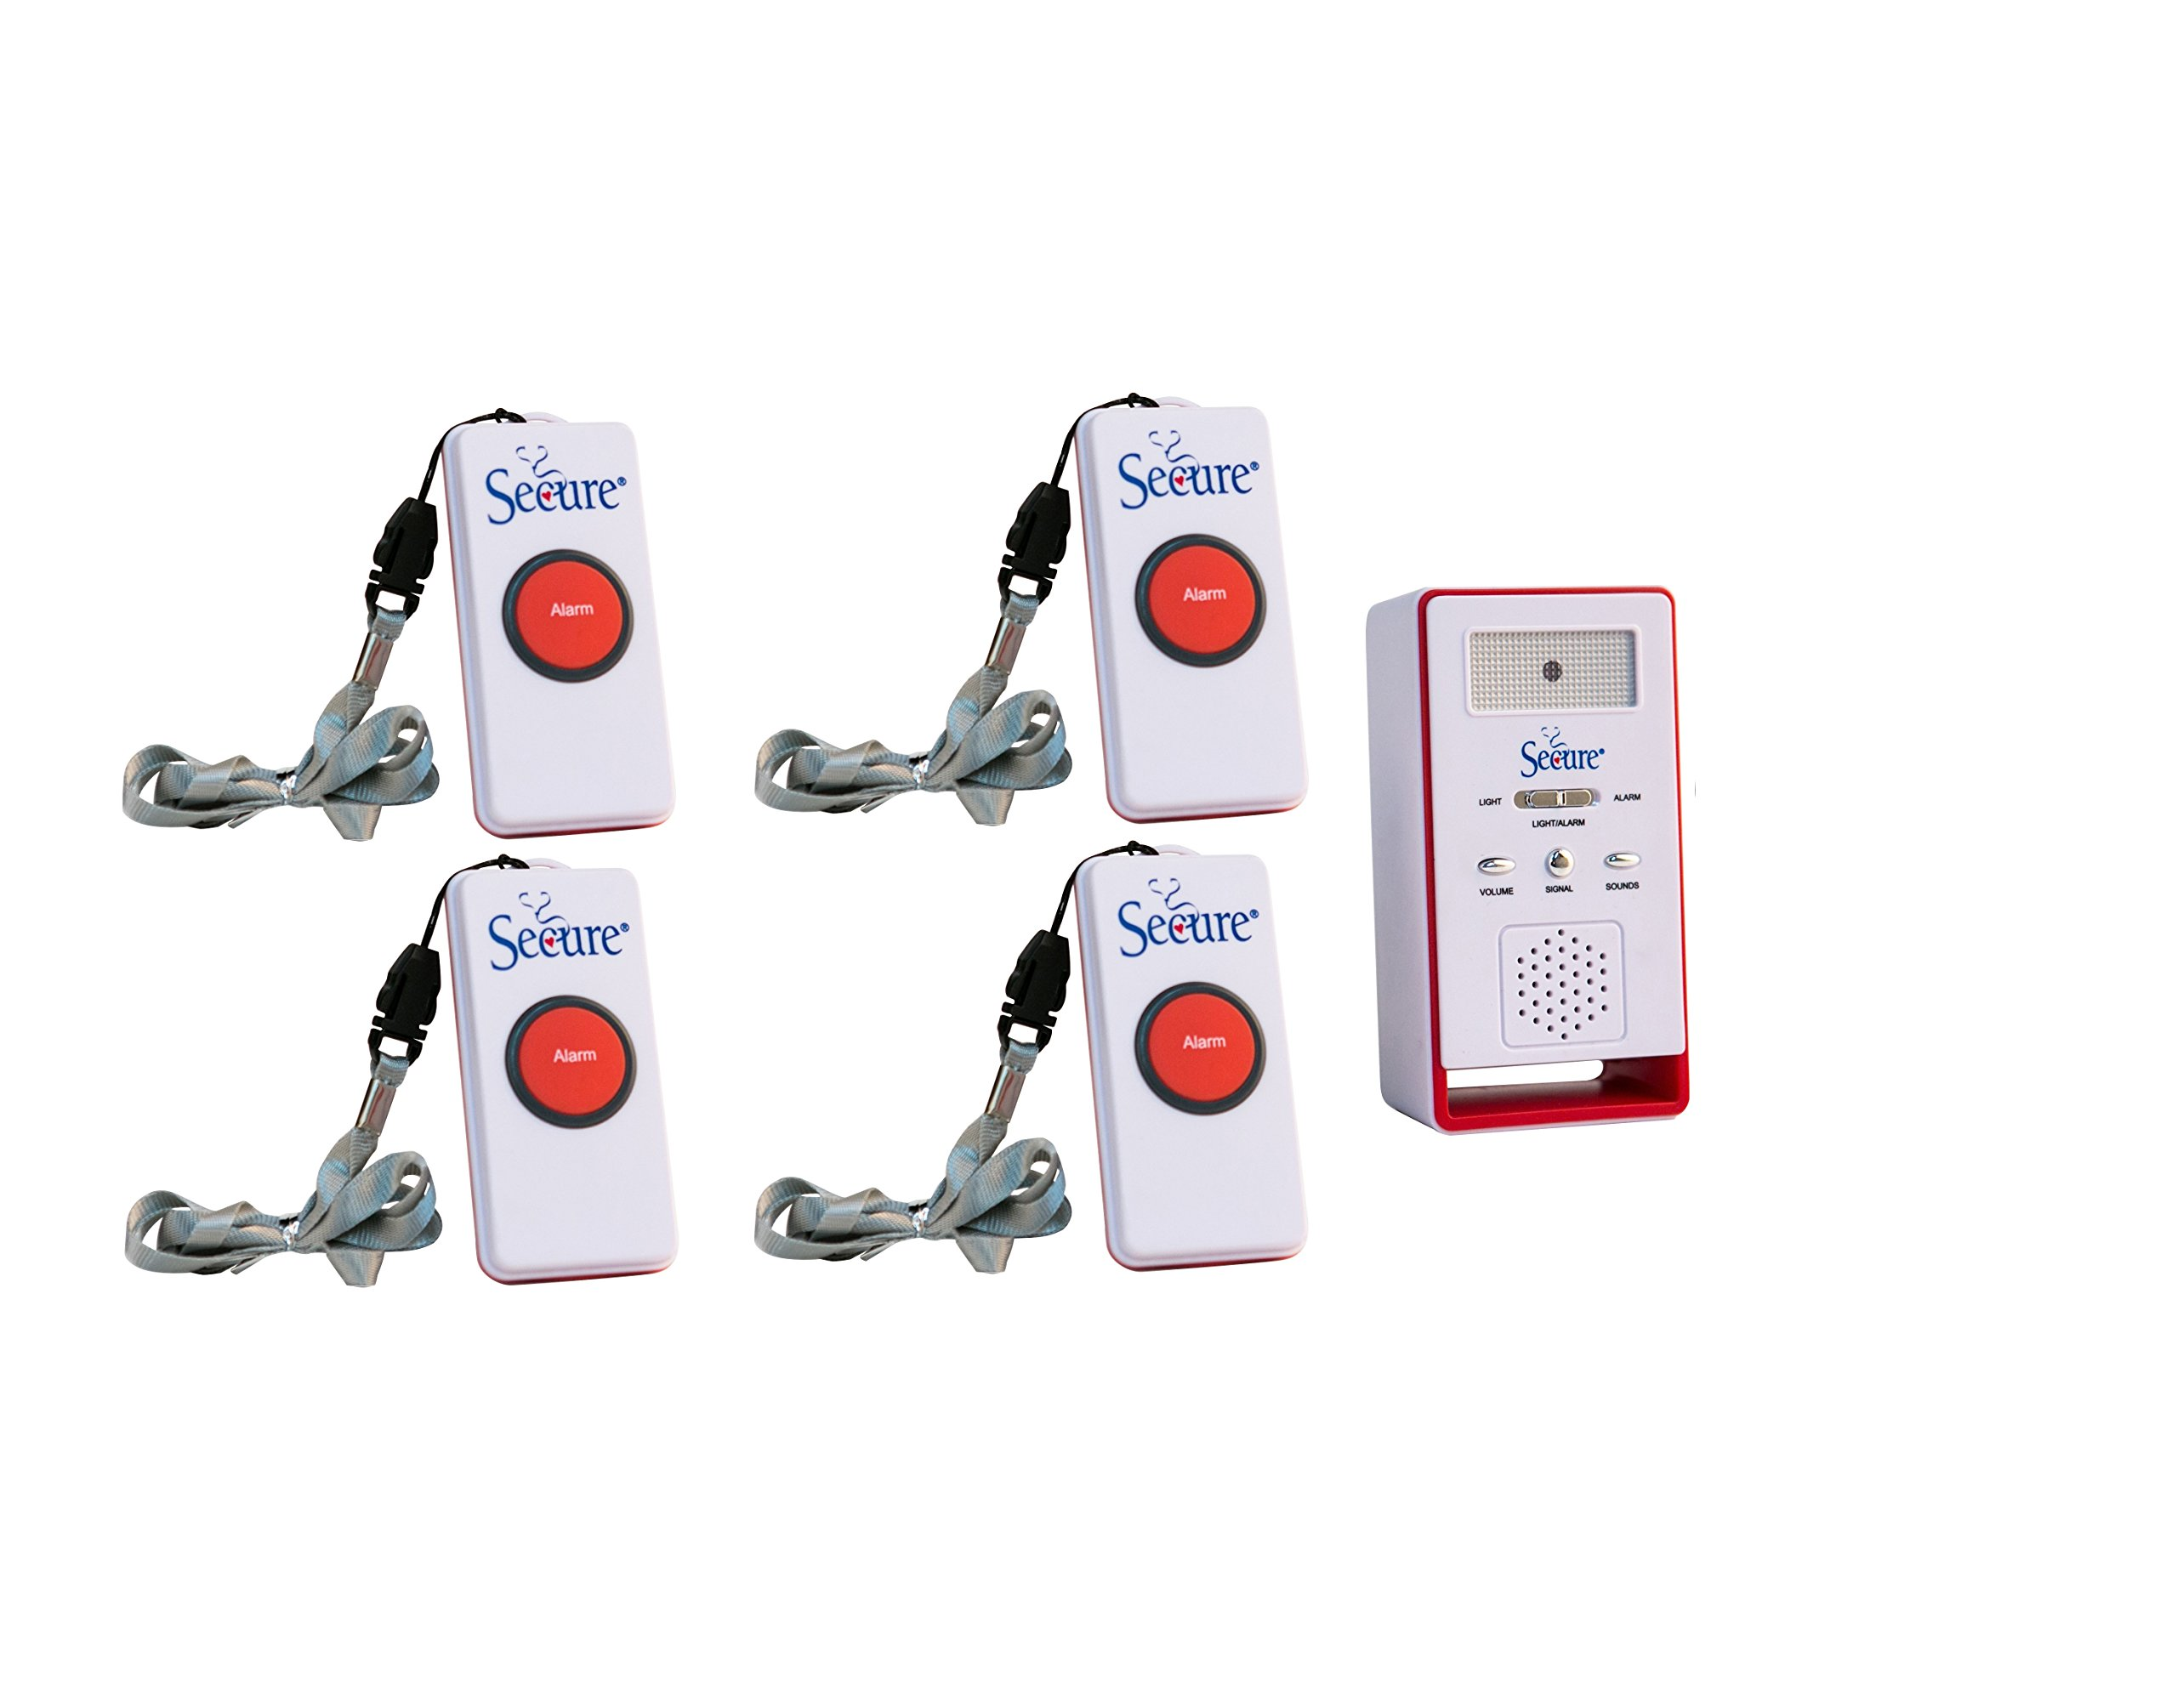 Secure SWCB-1 Wireless Remote Nurse Alert System - 4 Patient Call Buttons and 1 Caregiver Pager - 500+ Ft Range ... (4 Transmitter Set) by Secure